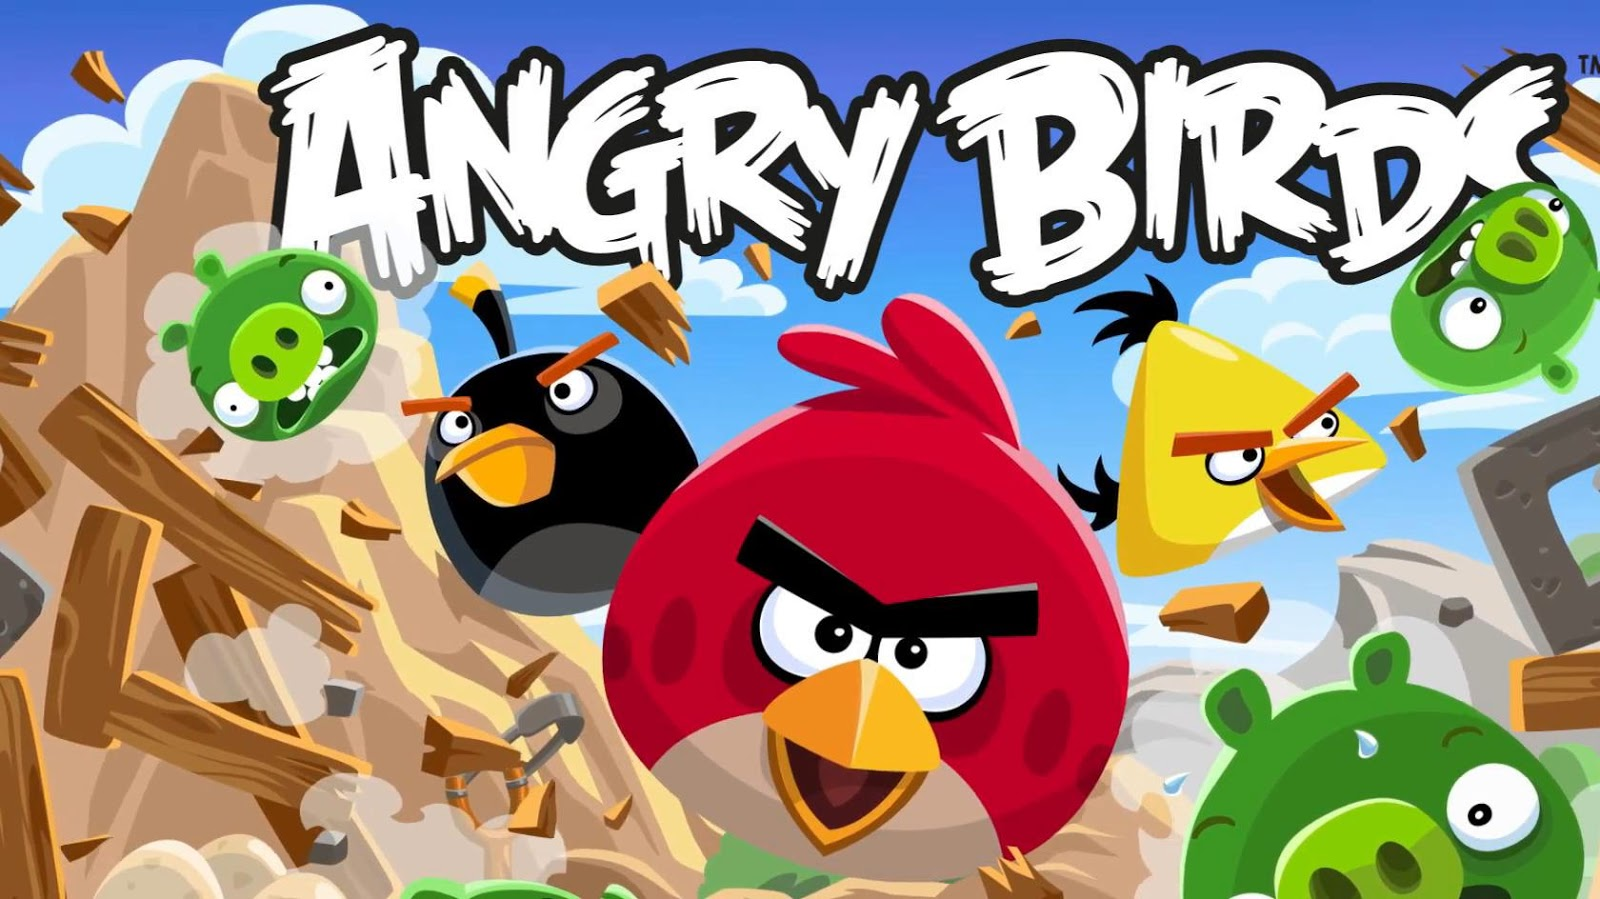 Angry Birds, games, Rovio, mobile game, mobile game Angry Birds, profits declined sharply, publish its results,